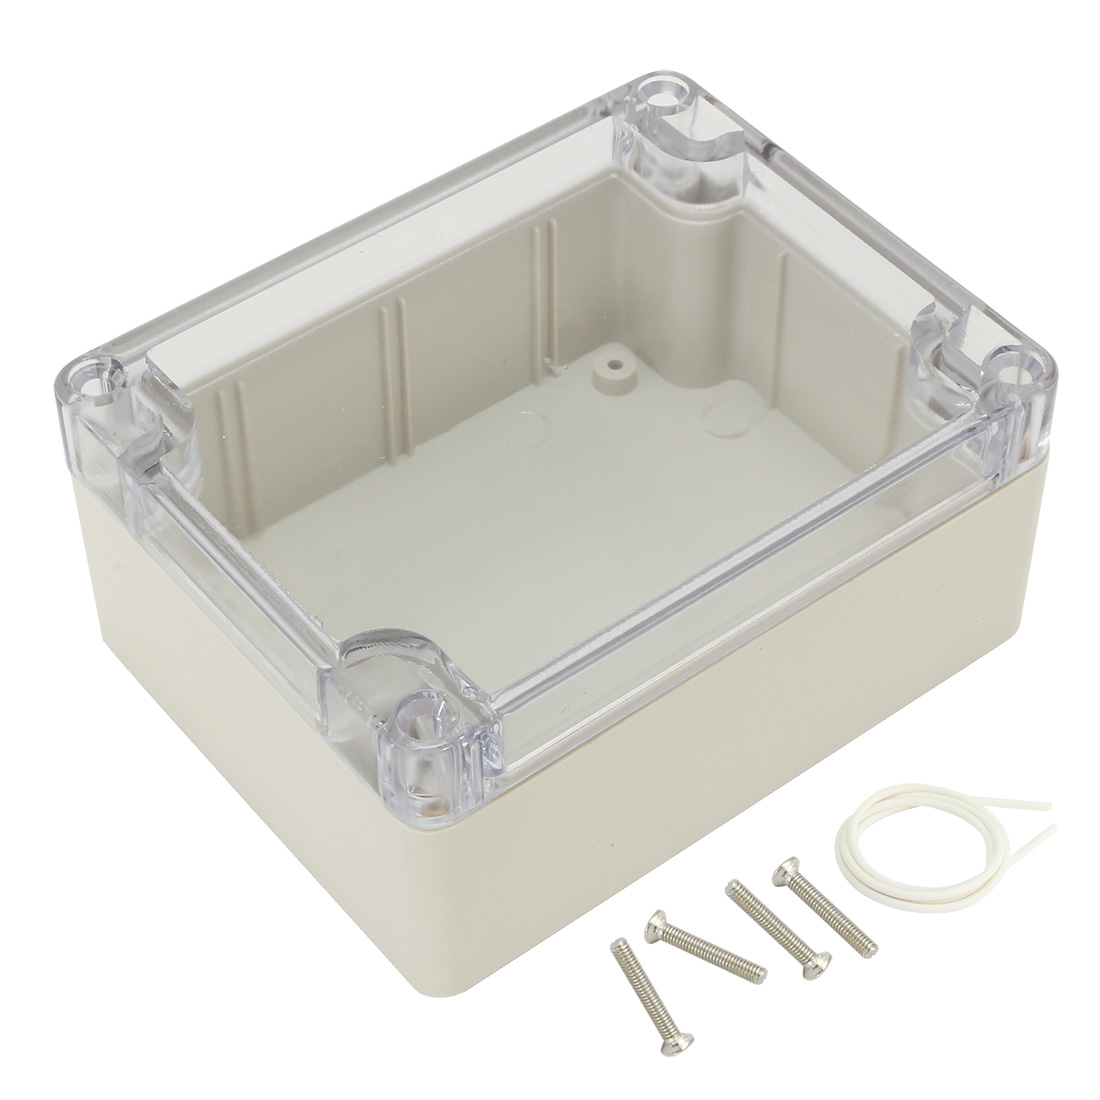 "4.53""x3.54""x2.16""(115mmx90mmx55mm) ABS Junction Box Electric Project Enclosure Clear"